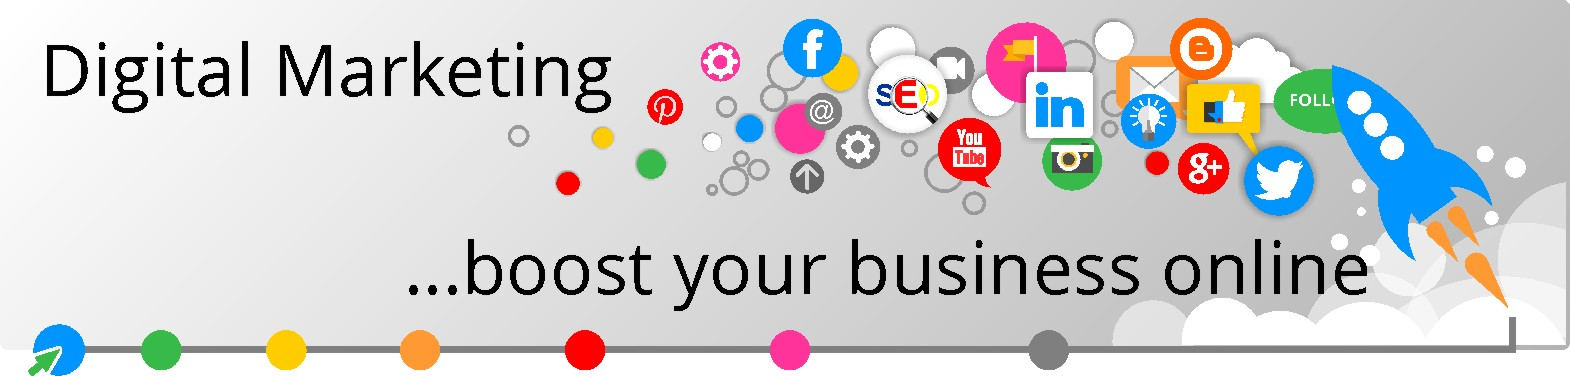 Digital Marketing and Graphic Design services